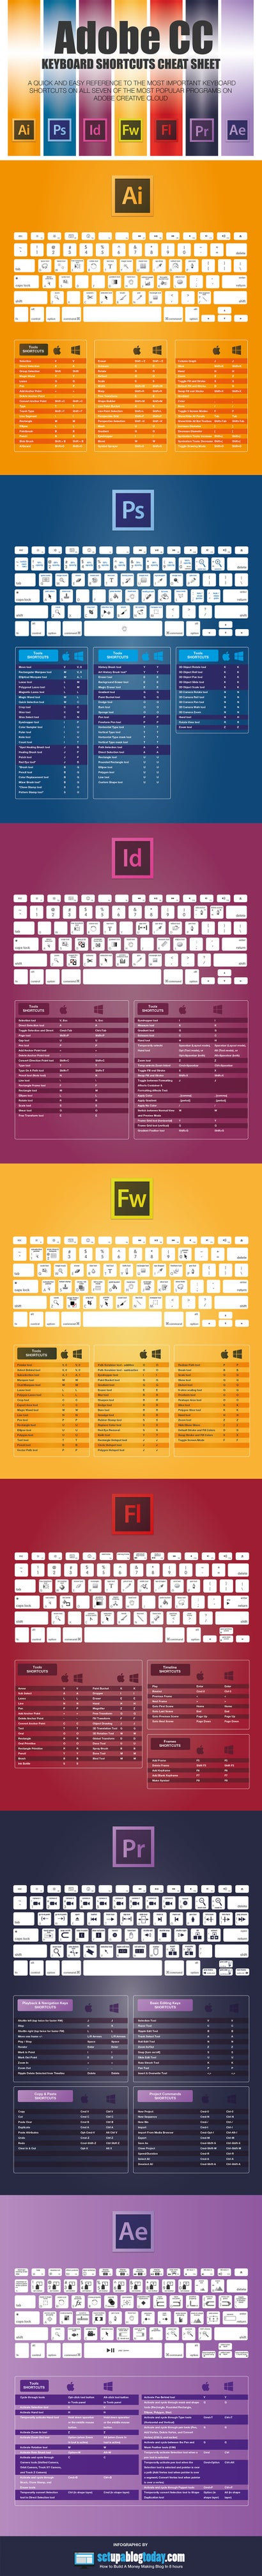 Learn All The Keyboard Shortcuts For Adobe Apps With This